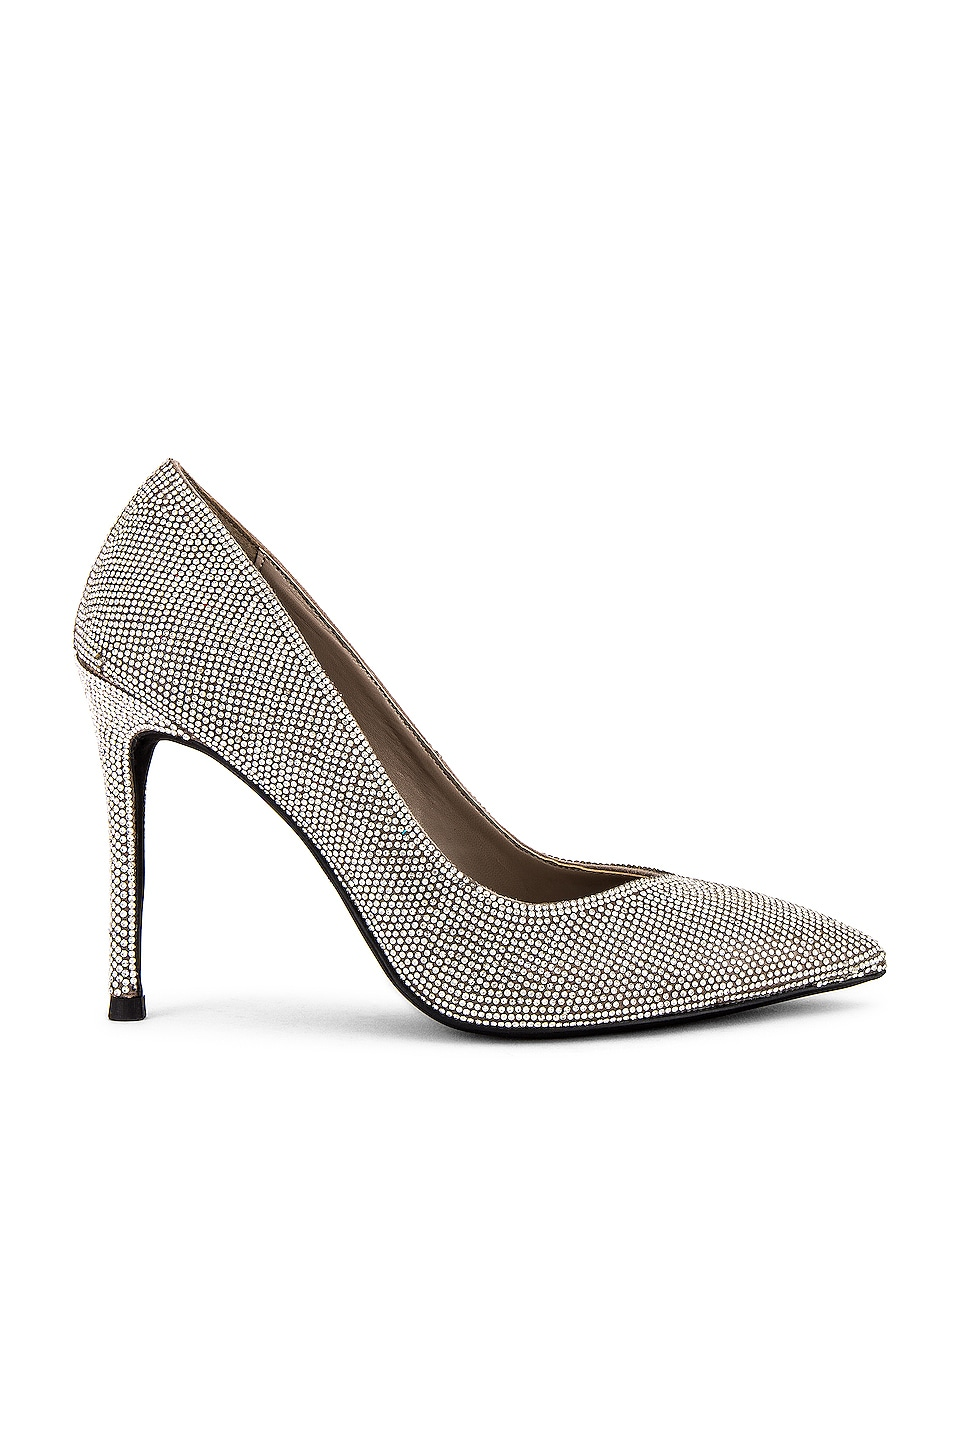 Jeffrey Campbell Lure Heel in Taupe Suede Silver